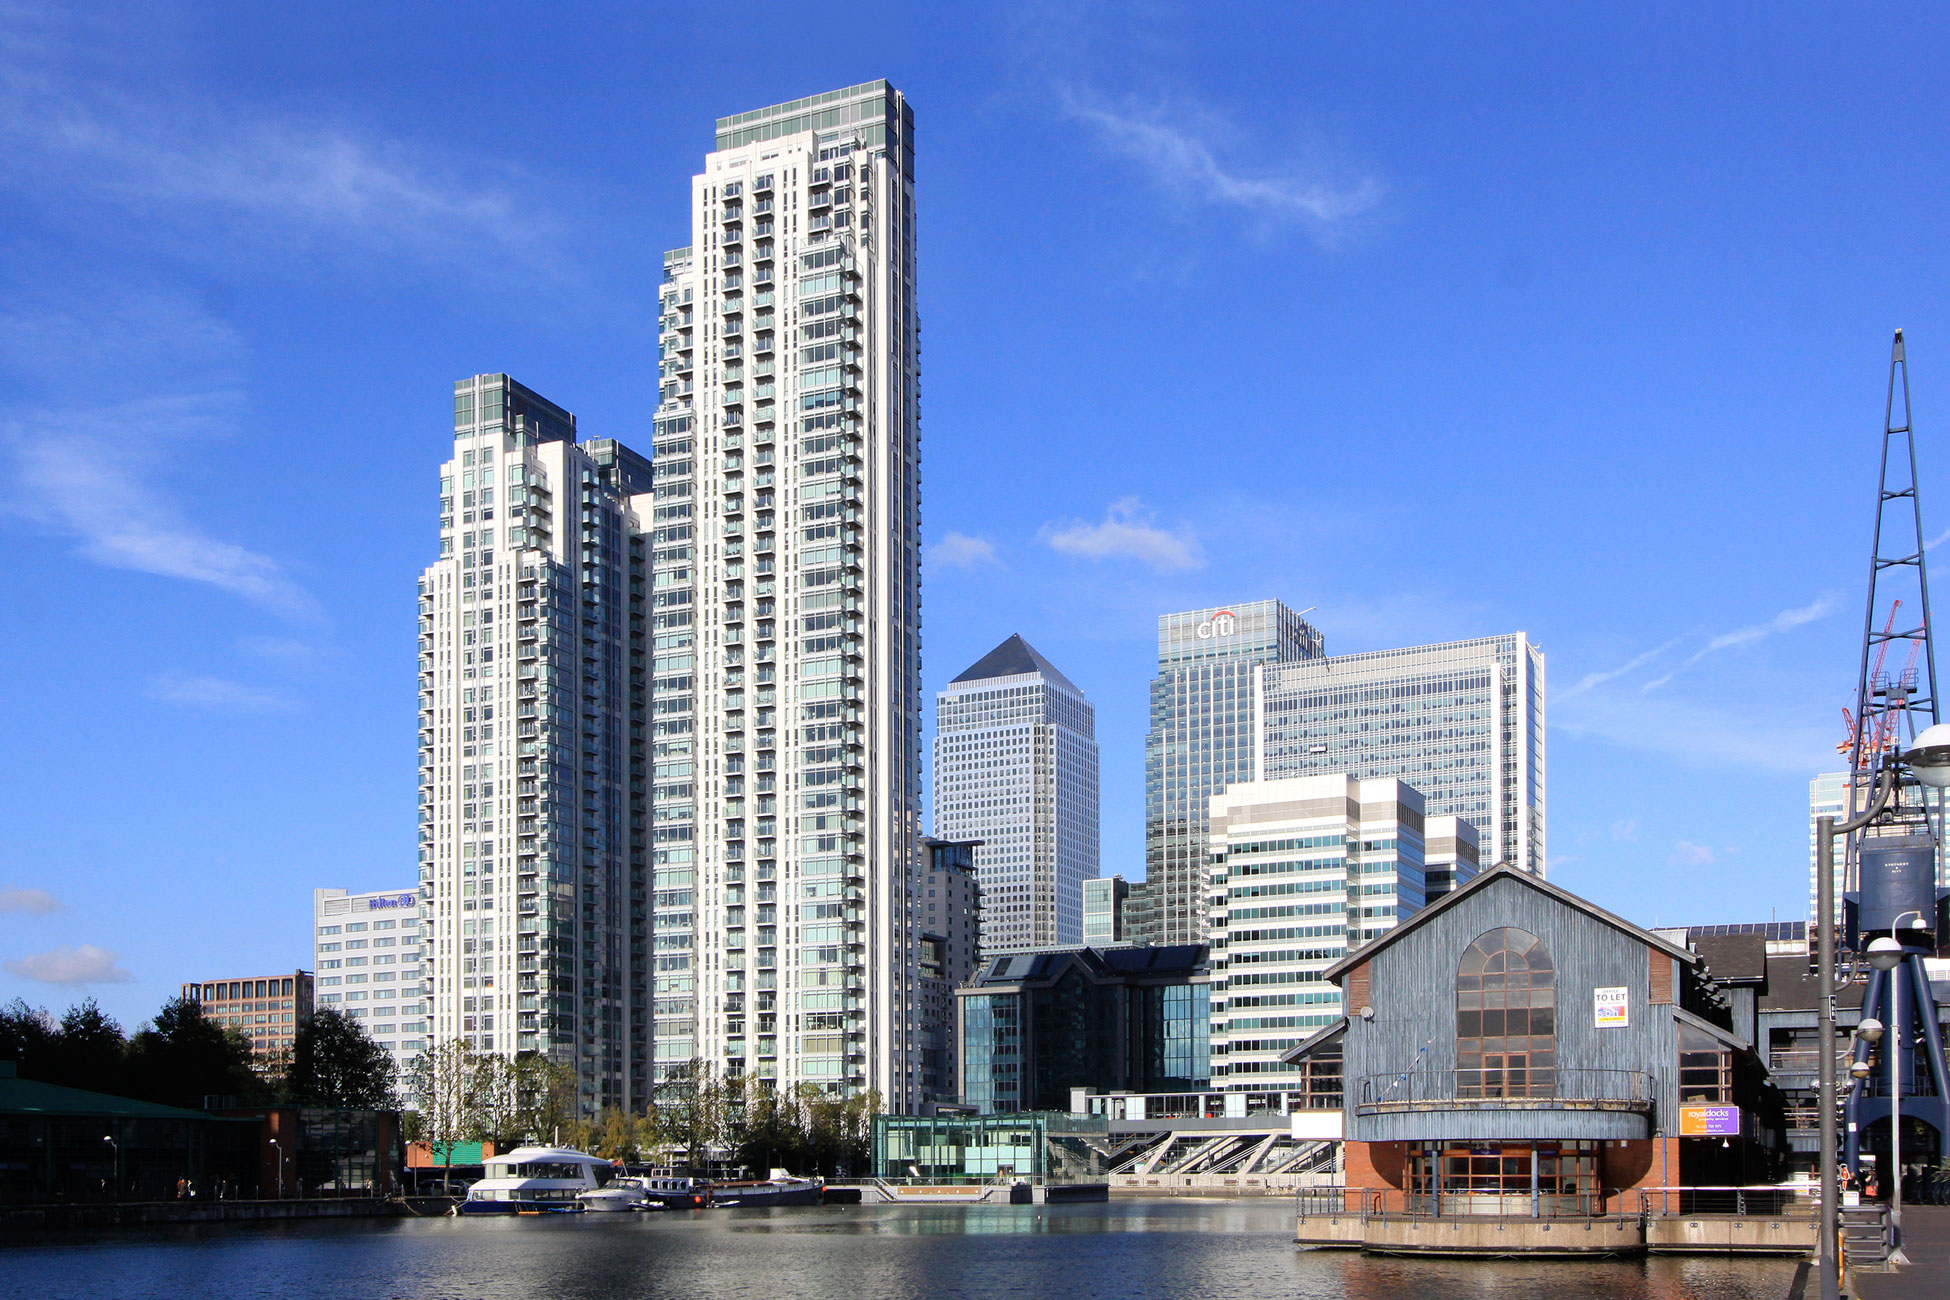 Exterior photography, Canary Wharf London alt view